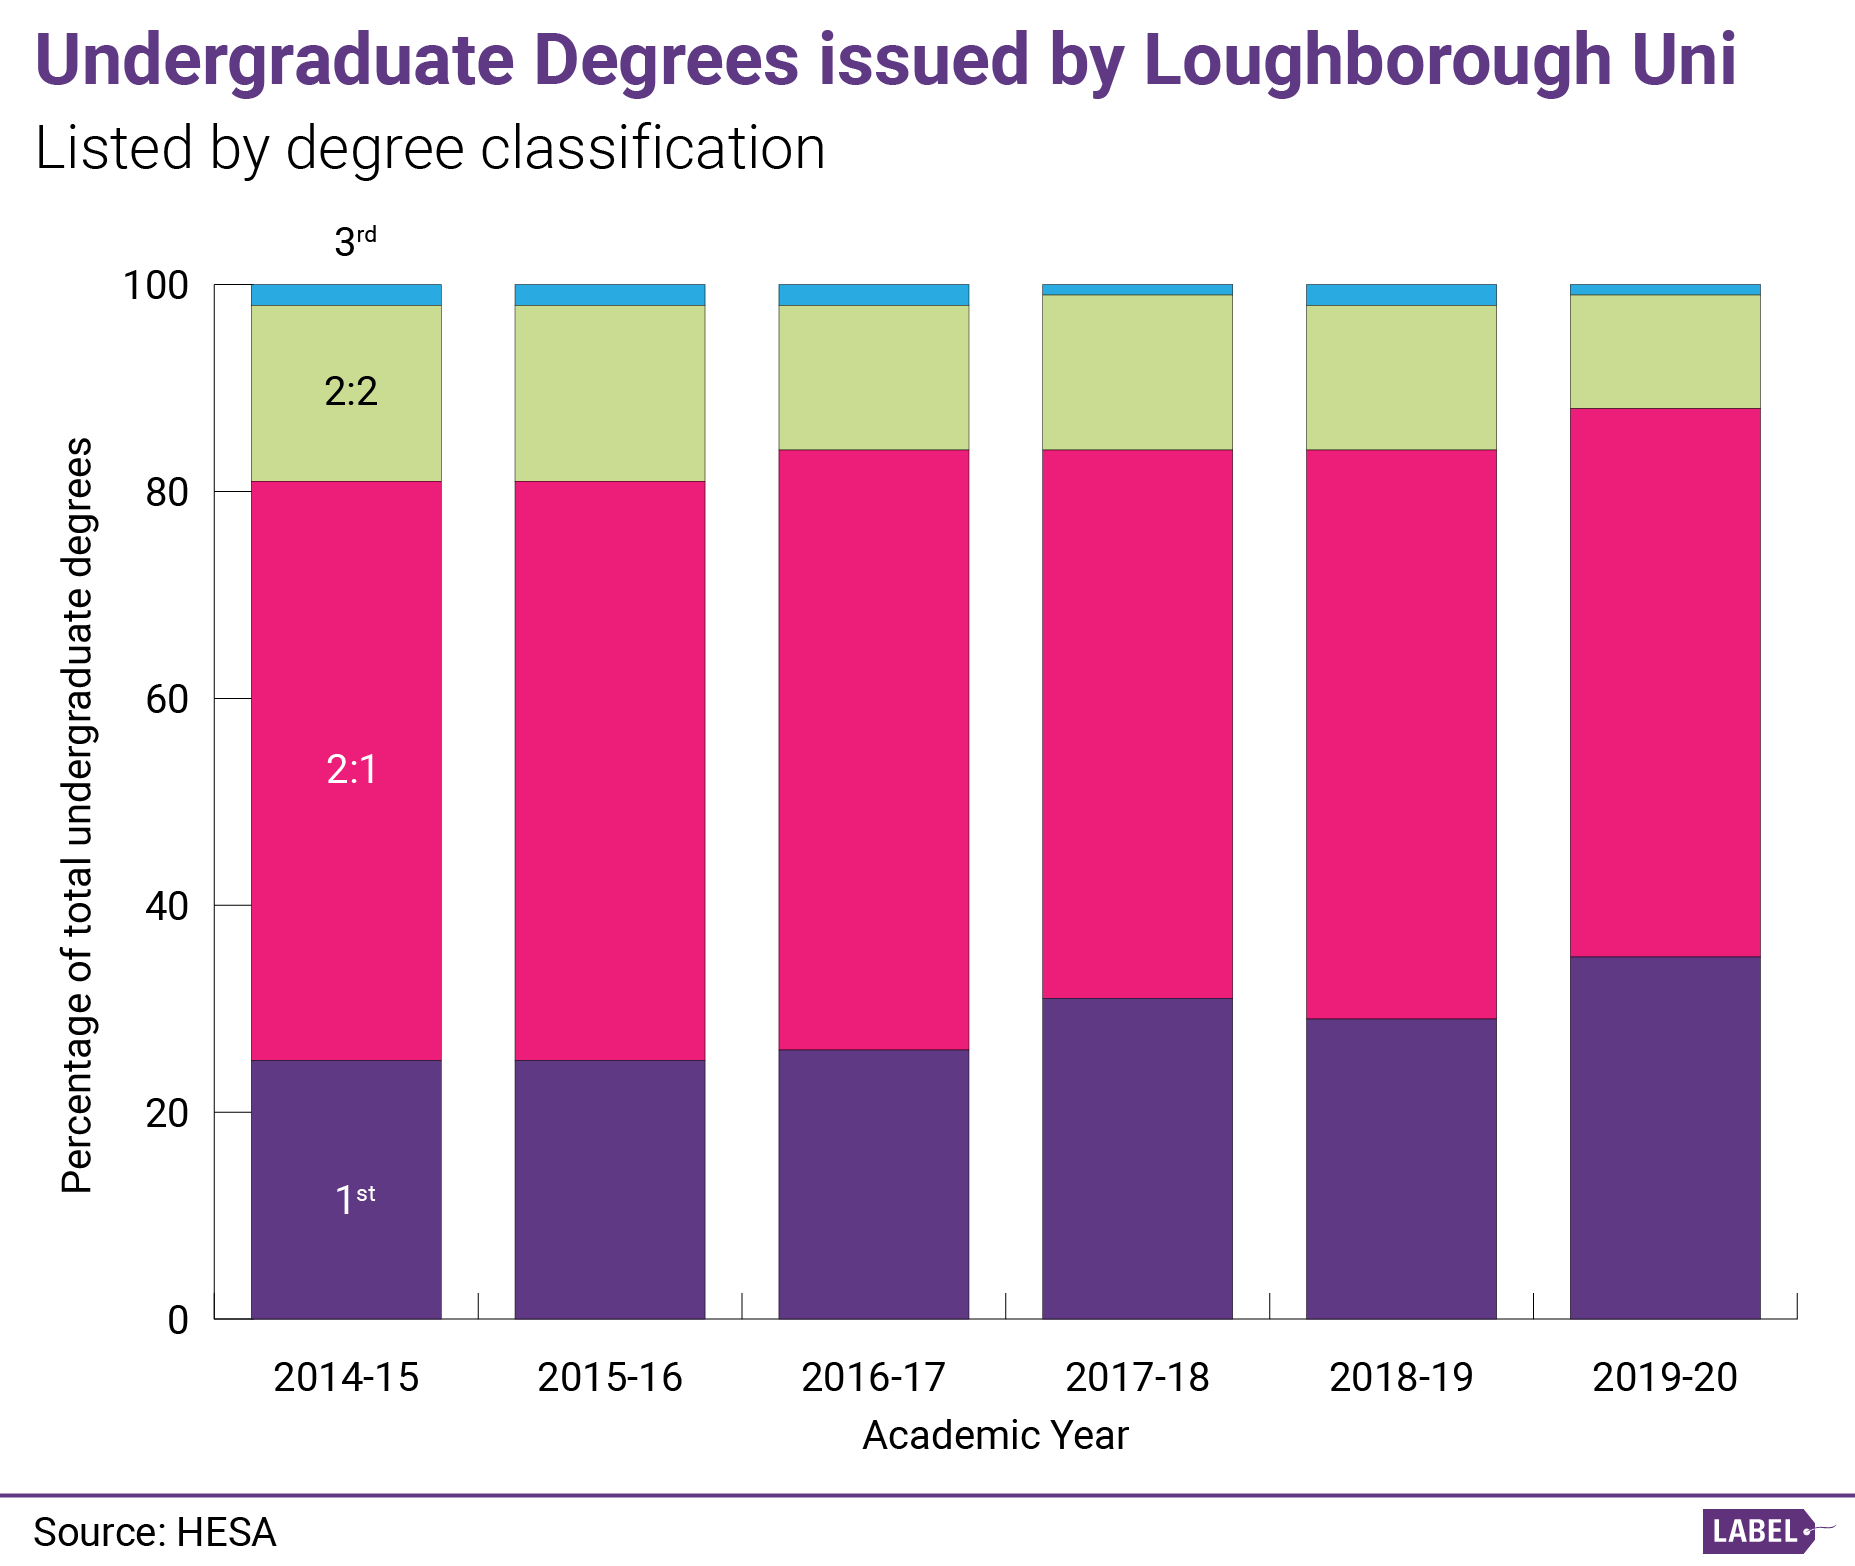 Graph showing undergraduate degrees issued by Loughborough University from 2015 to 2020. Data also in table form below.